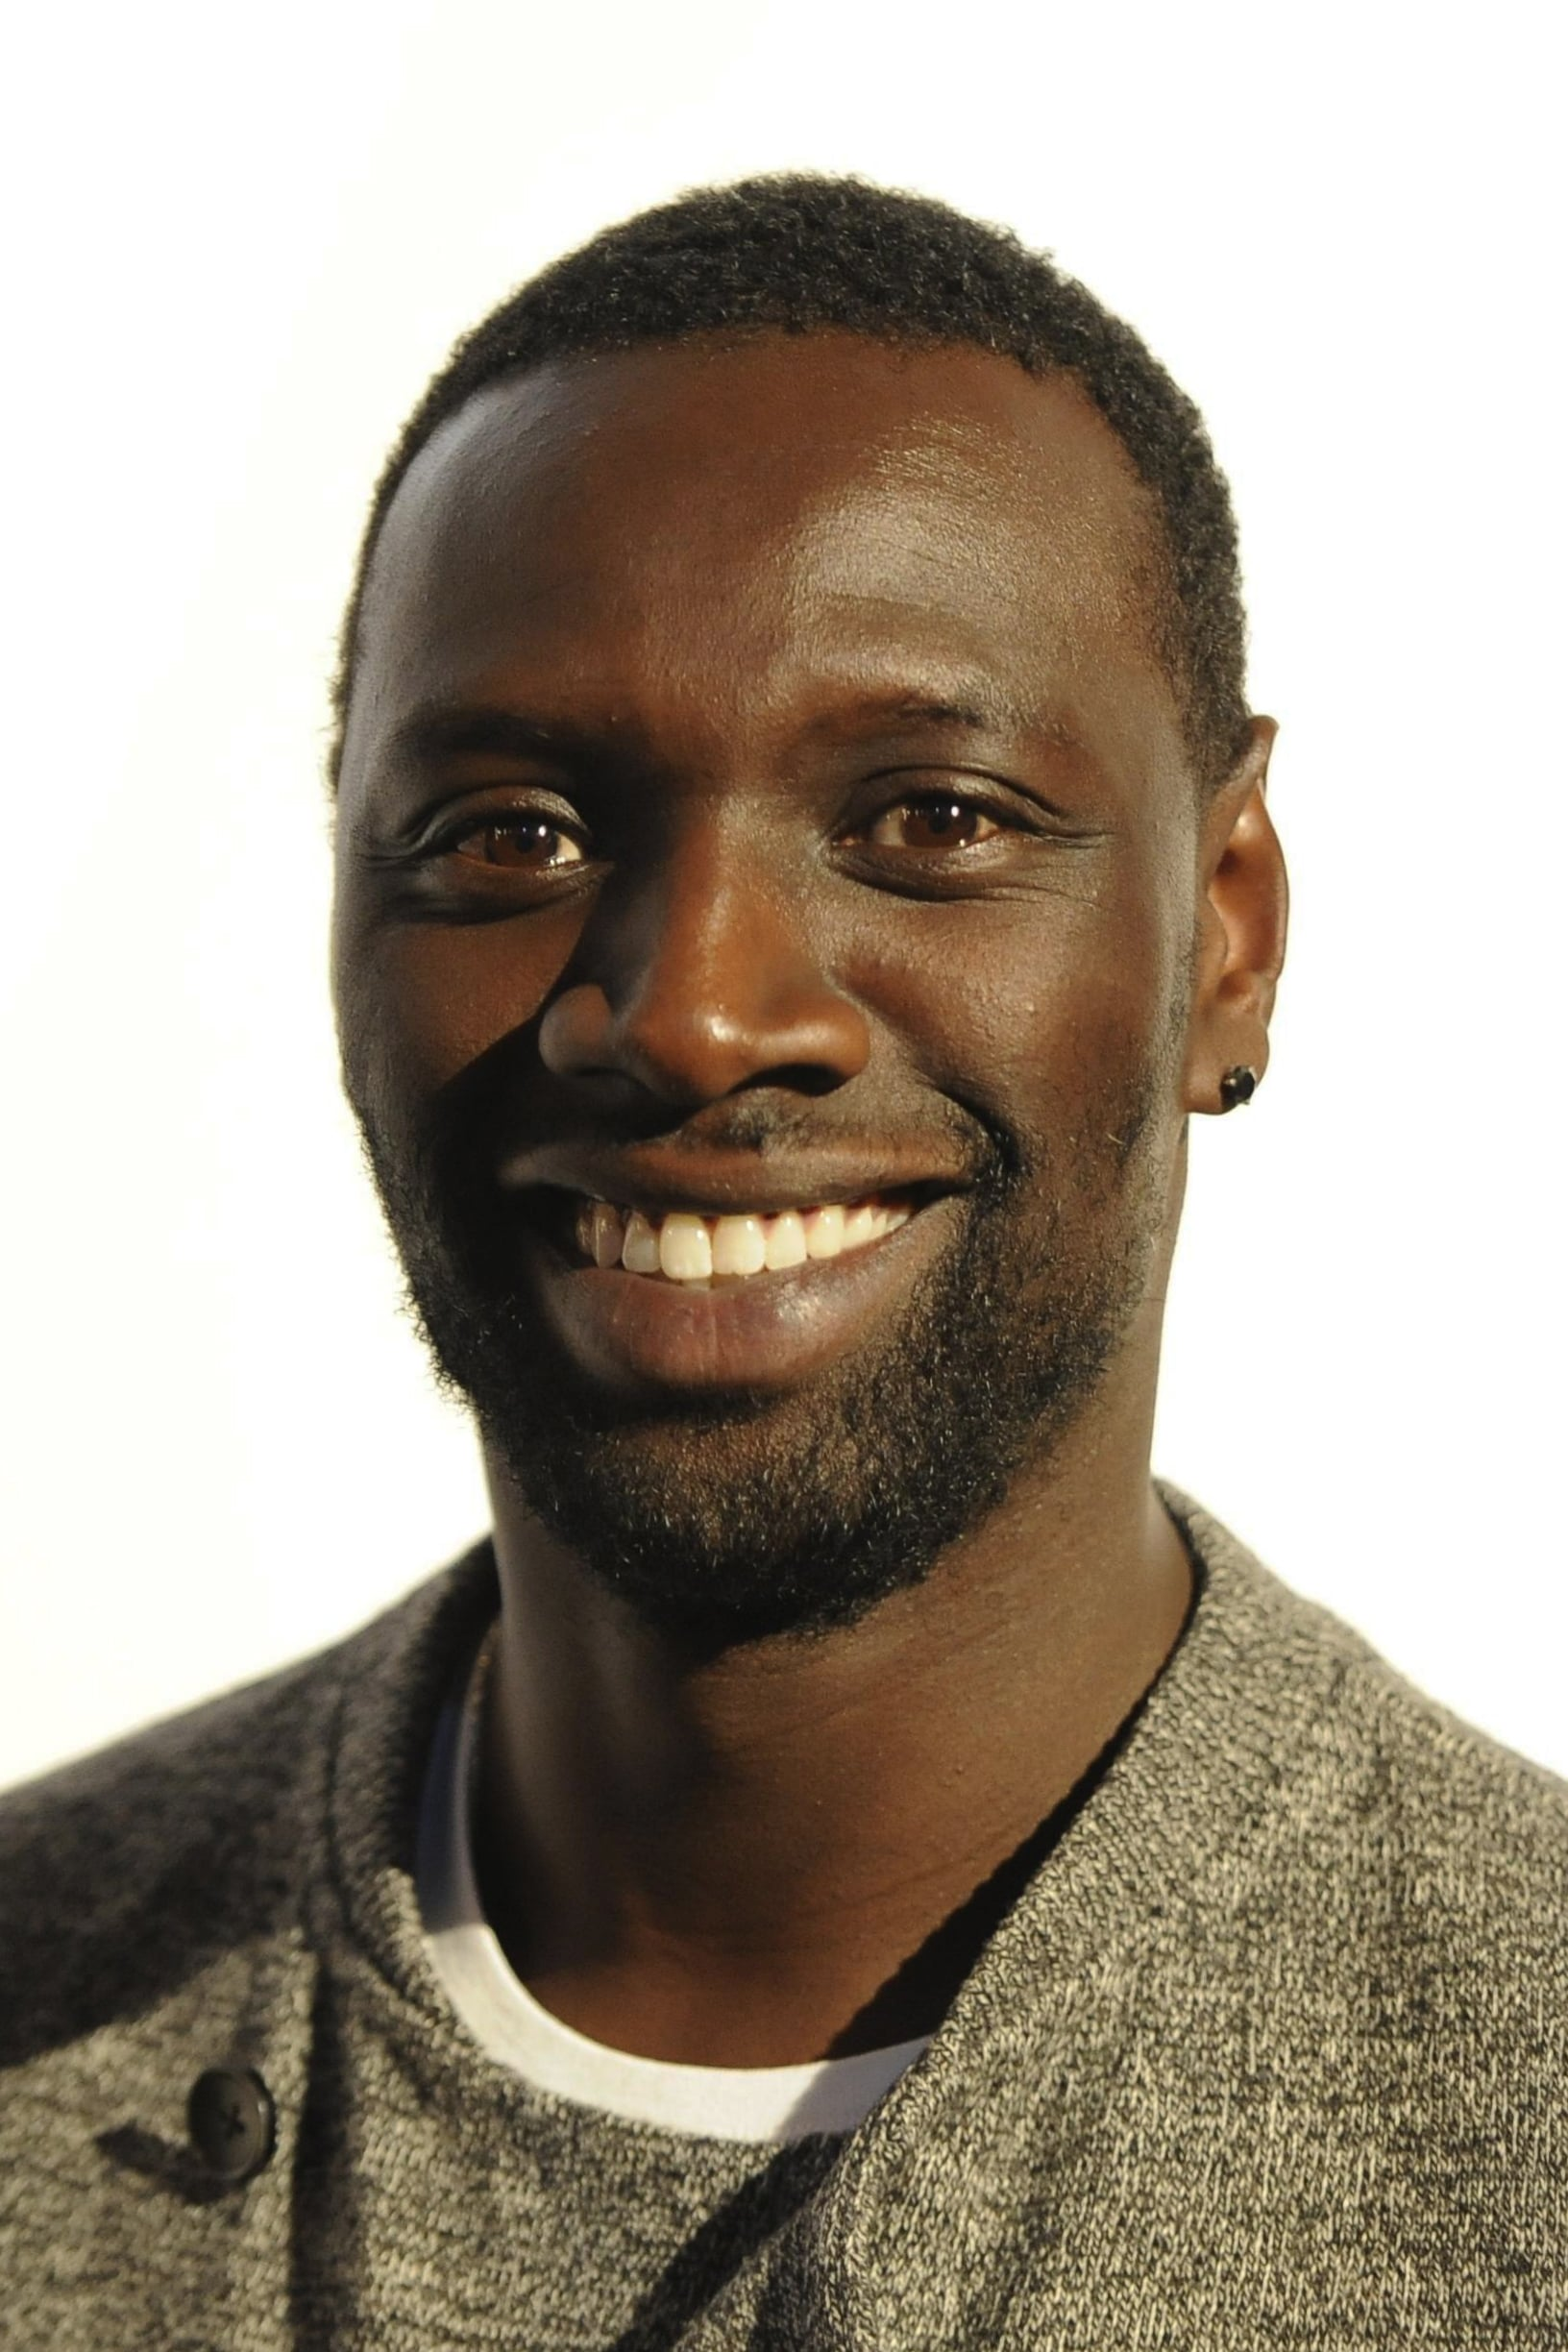 Omar Sy Profile Images The Movie Database Tmdb